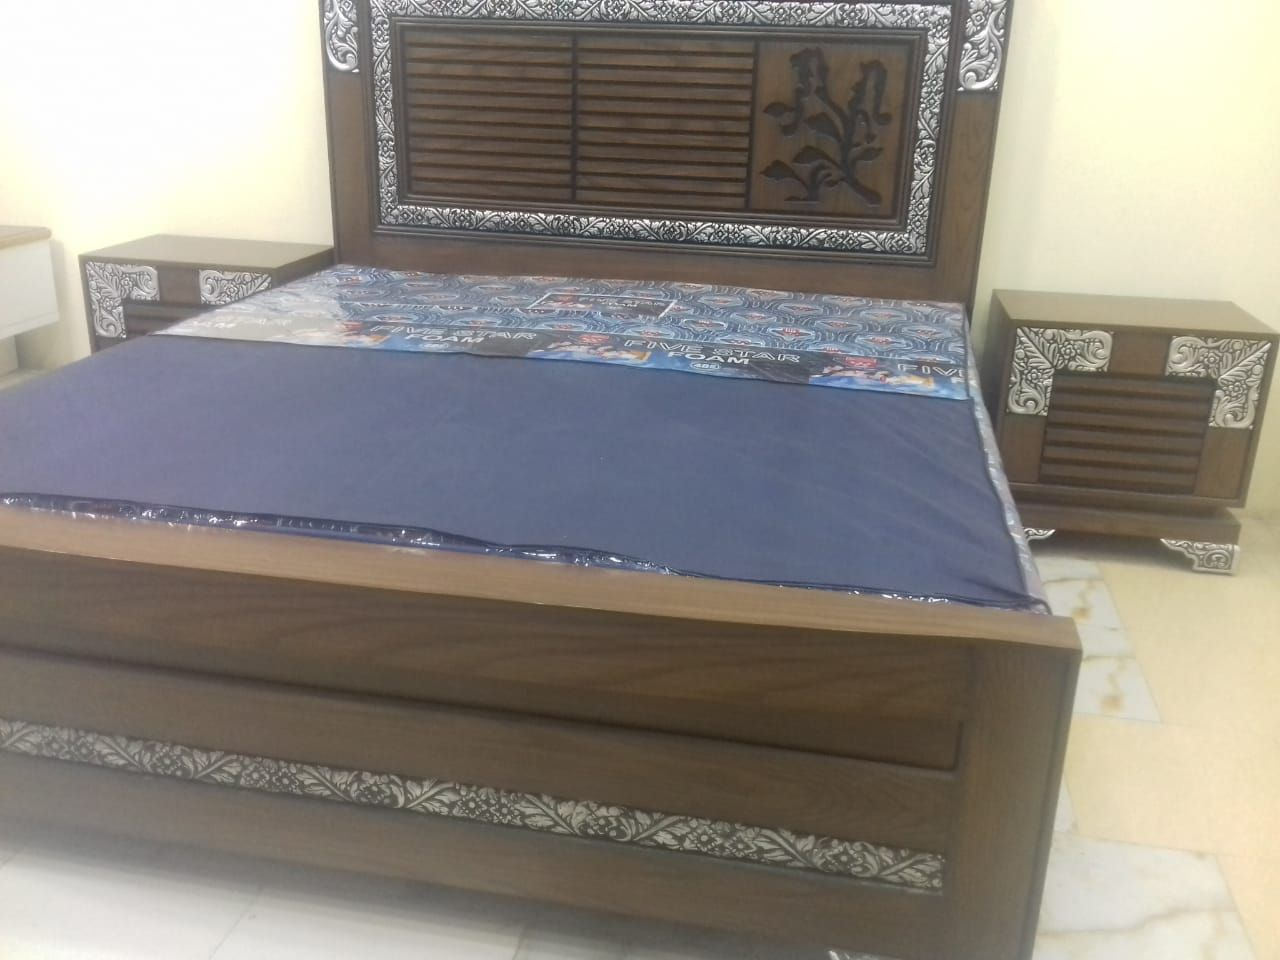 bed and mattress, sleep number bed, guest bed, foldable